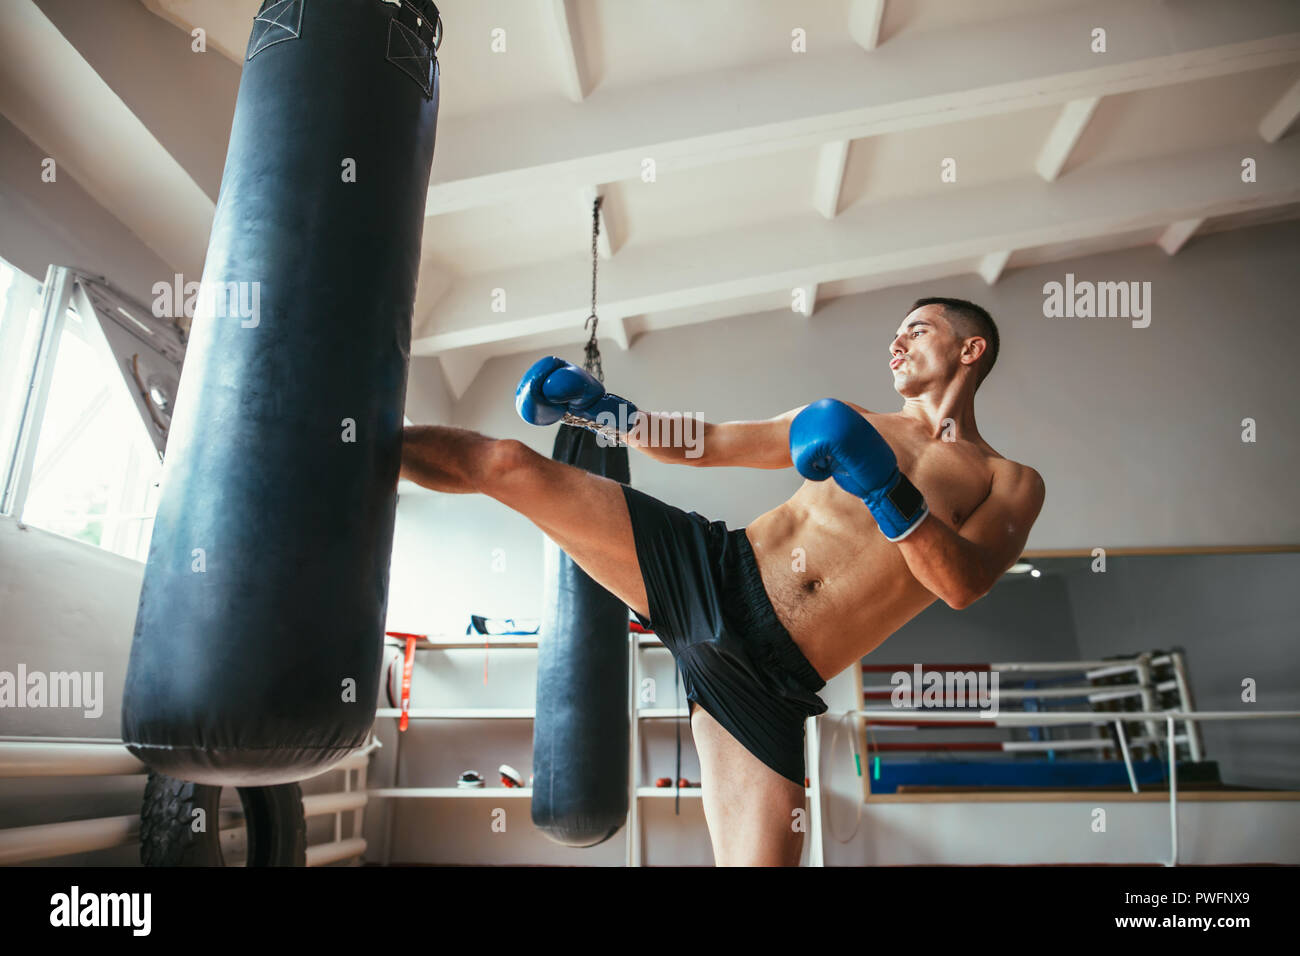 Male boxer workout high kick on the punching bag in gym. Sport concept - Stock Image